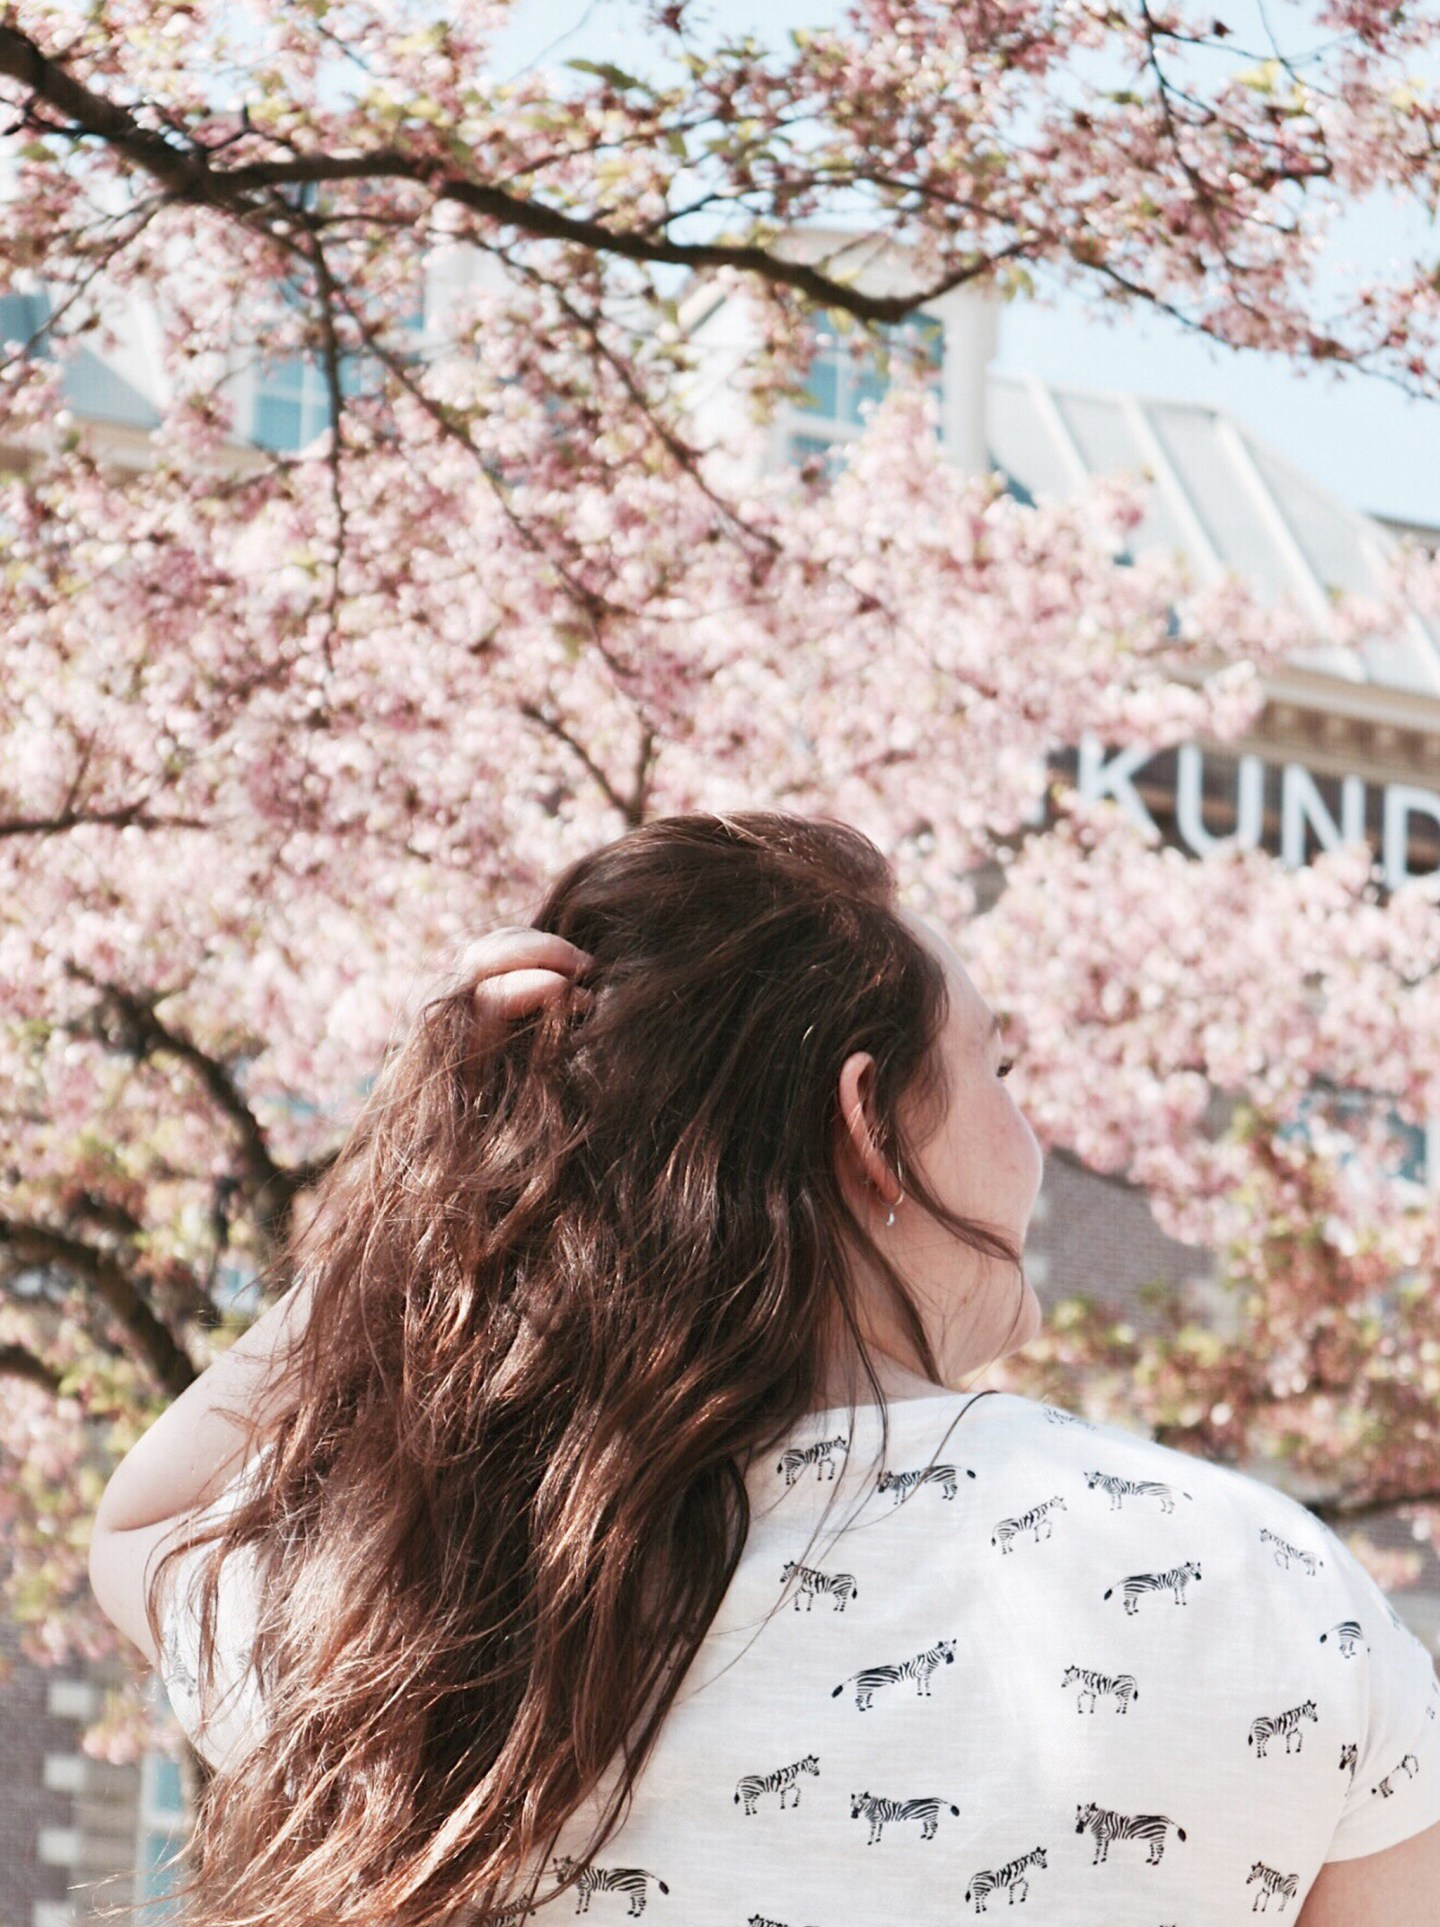 Beach Day, Cherry Blossoms, Going To Basketball Games & More | Neeltje's Thoughts: April & May